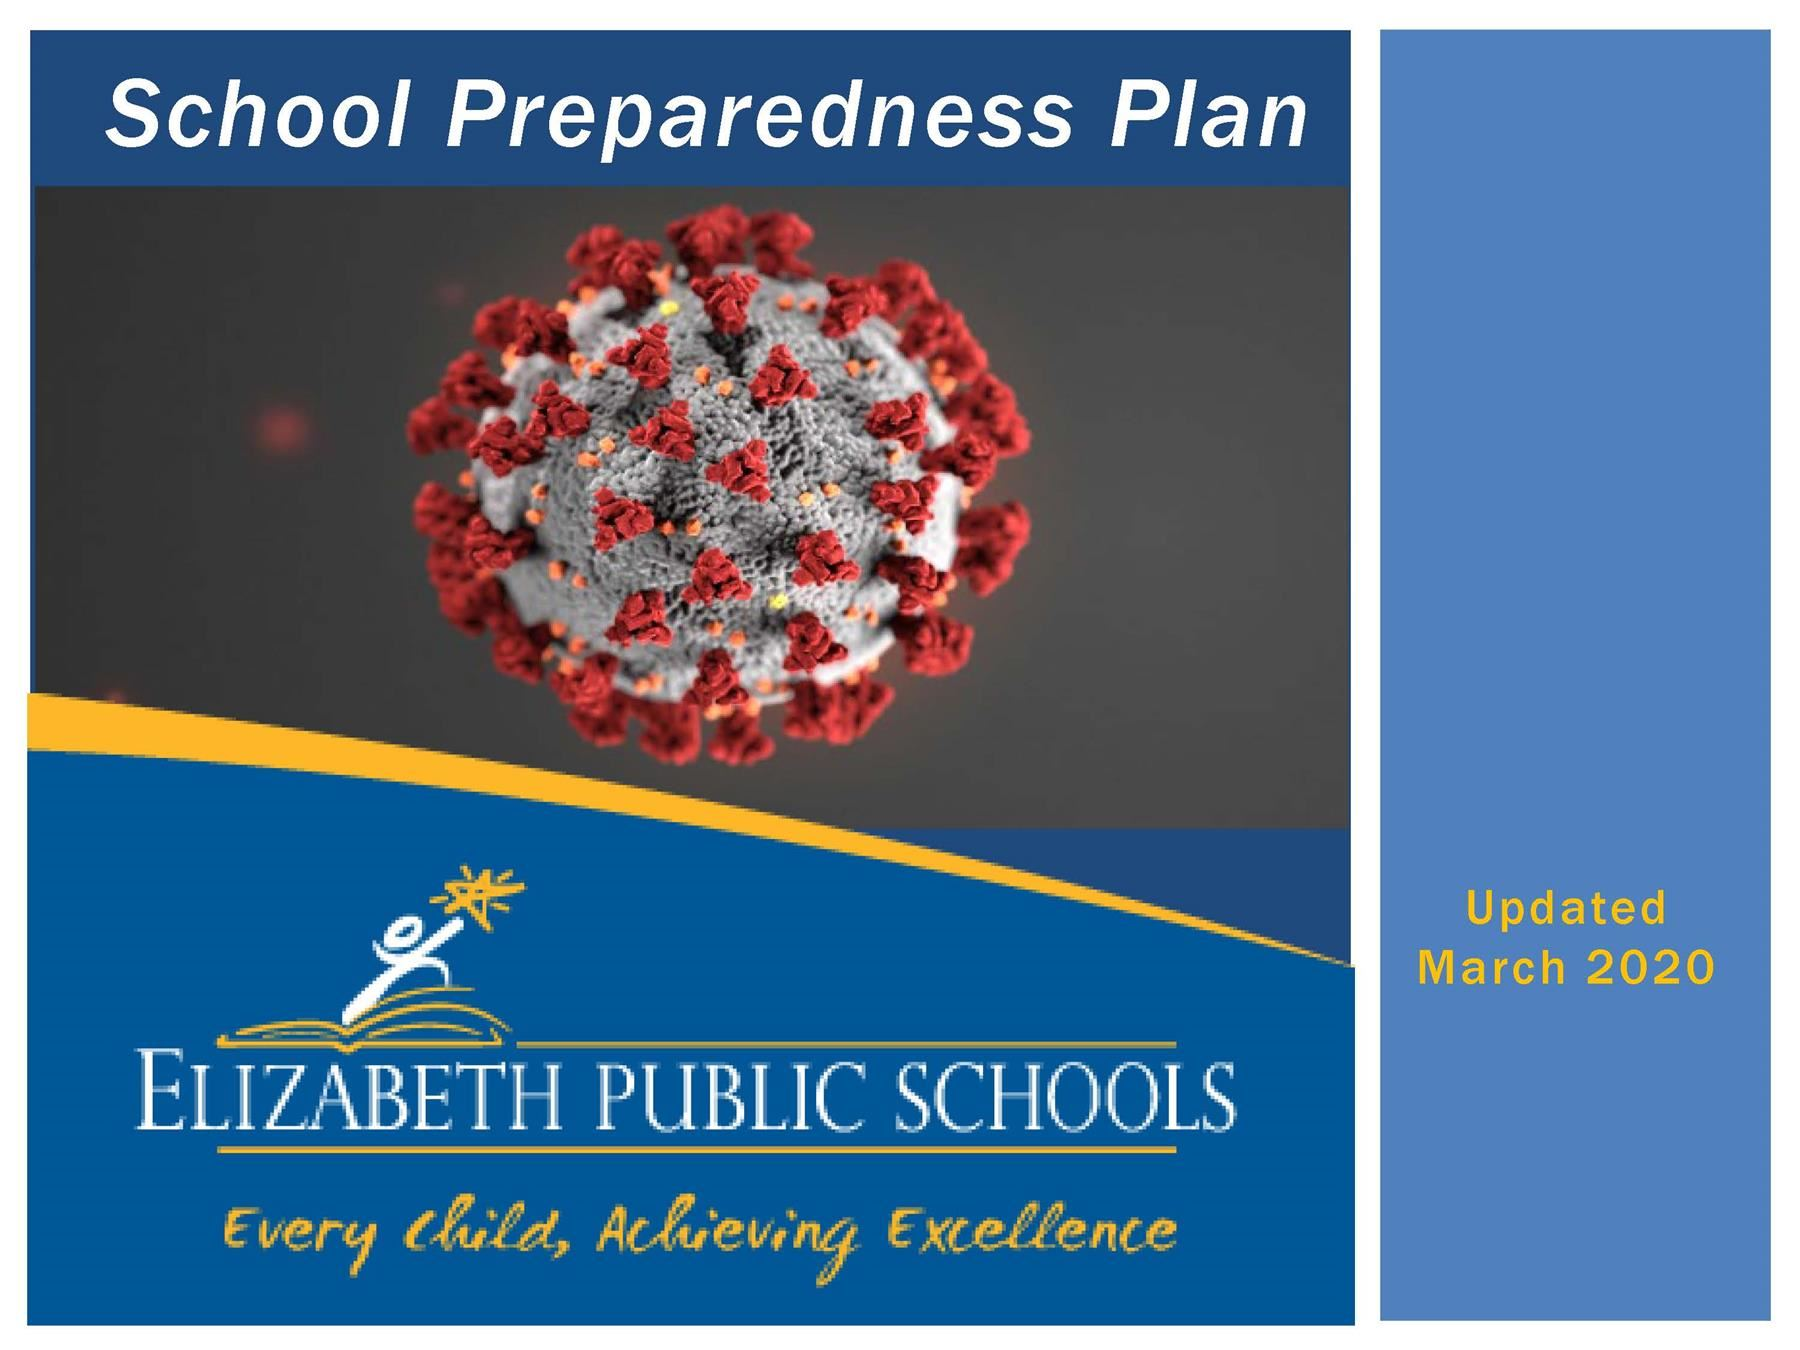 School Preparedness Plan